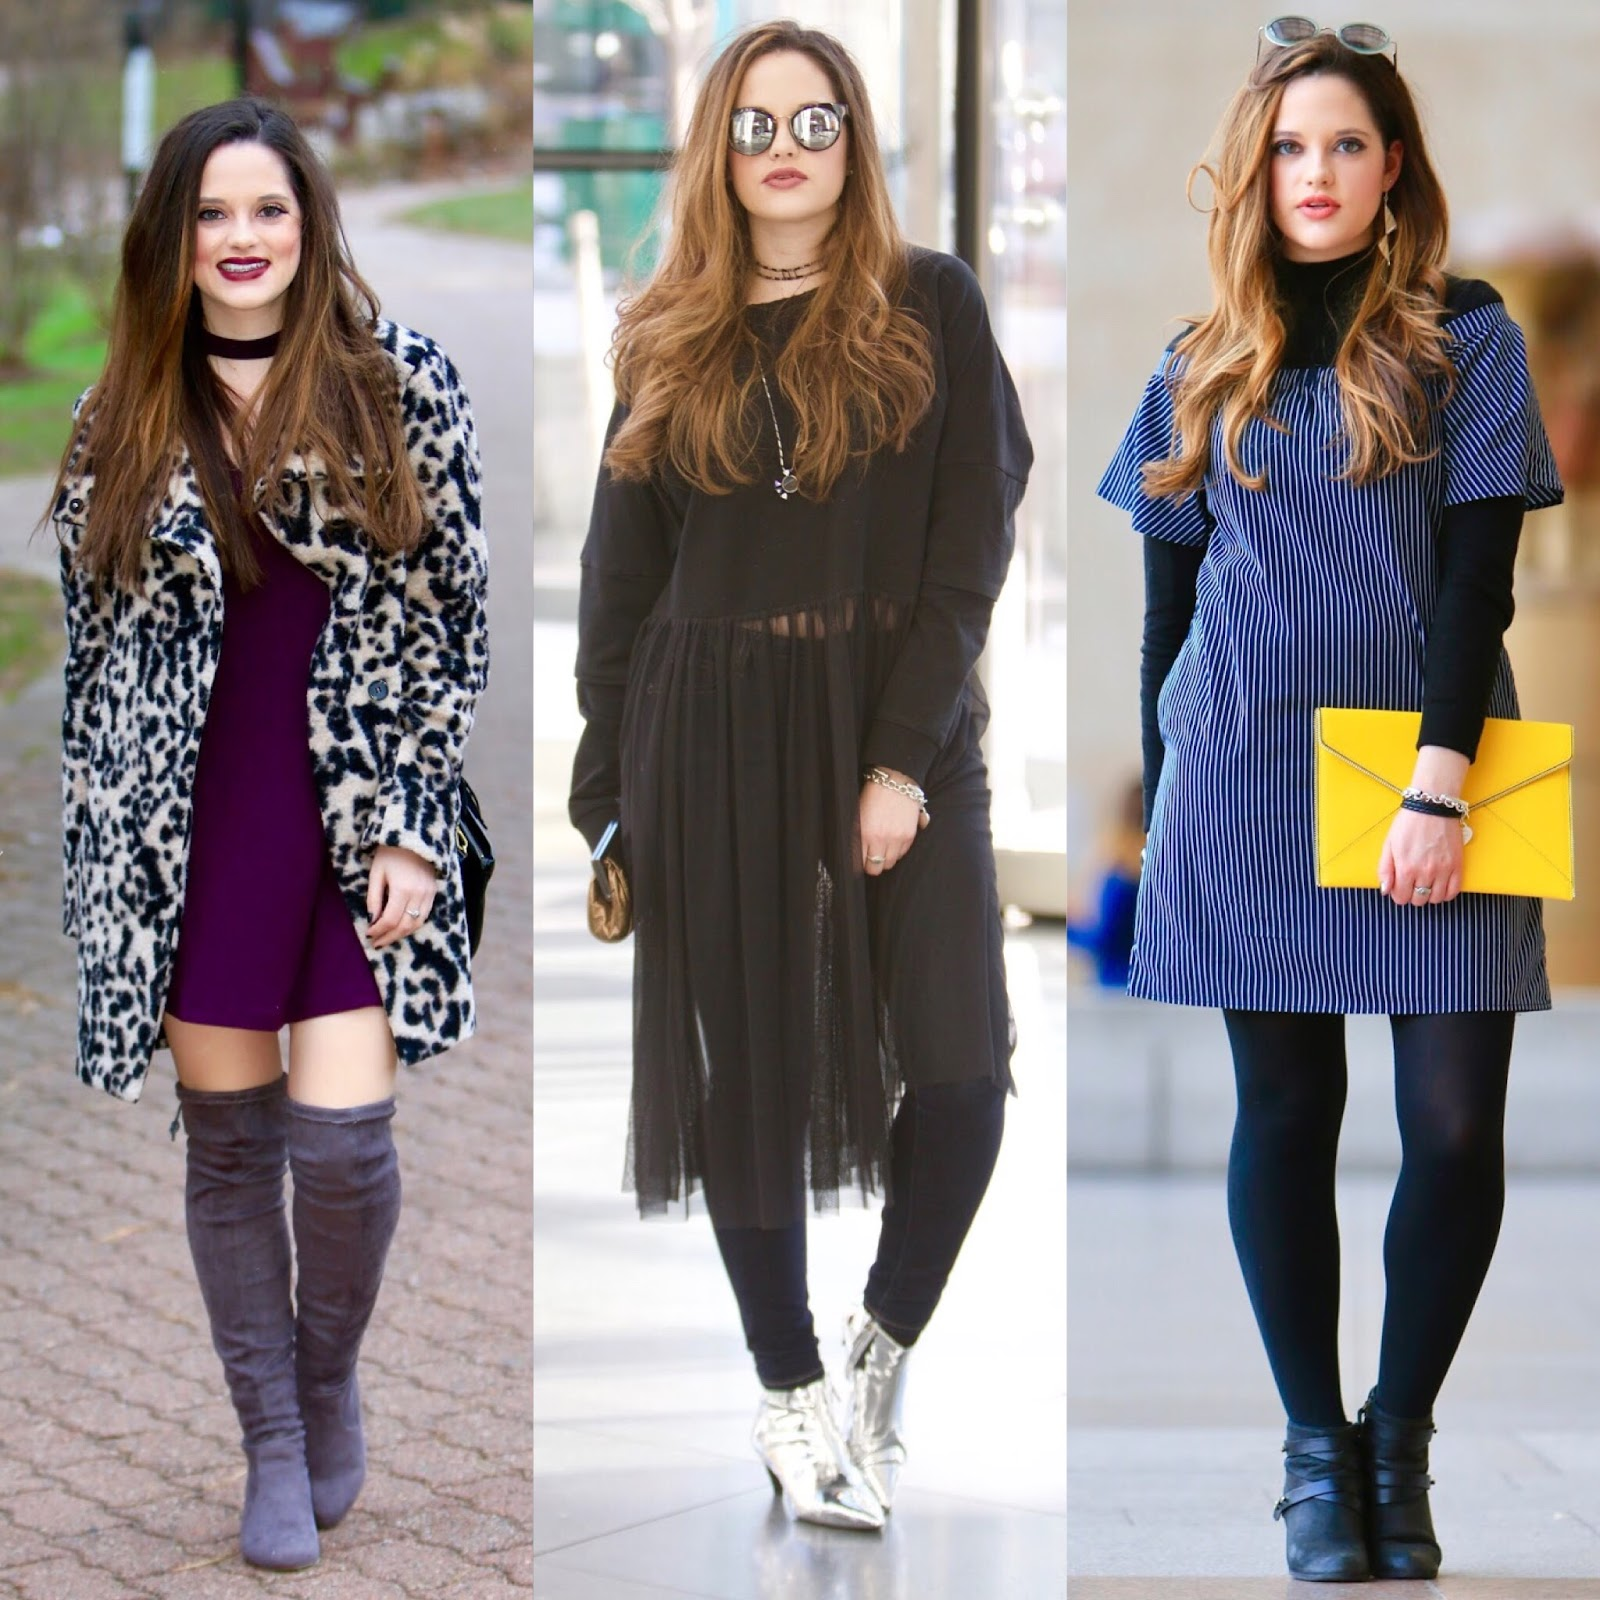 Fashion blogger winter outfit ideas